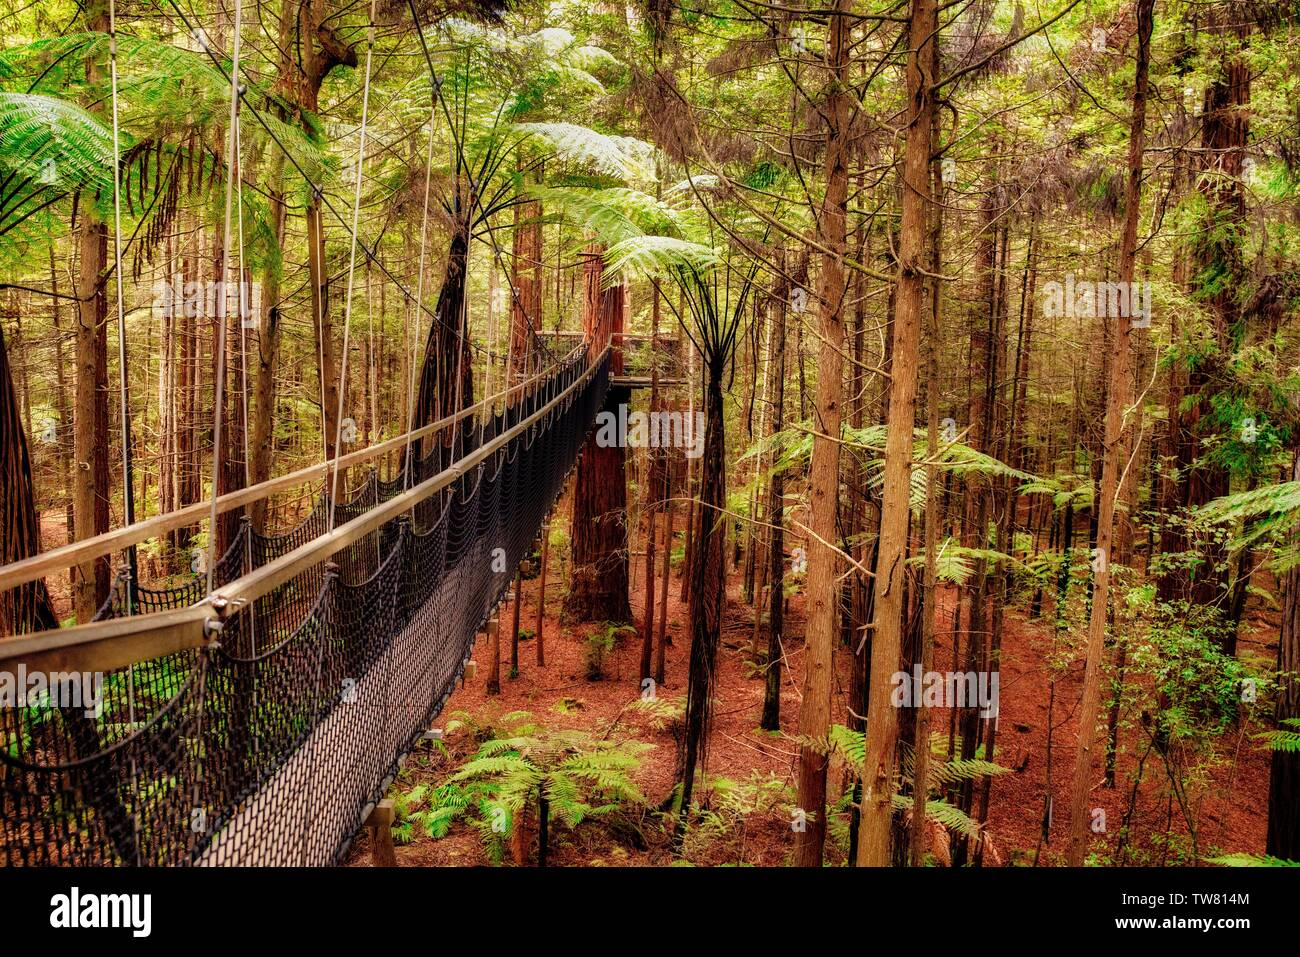 The amazing Redwoods tree walk wandering through the forest above ground - Stock Image